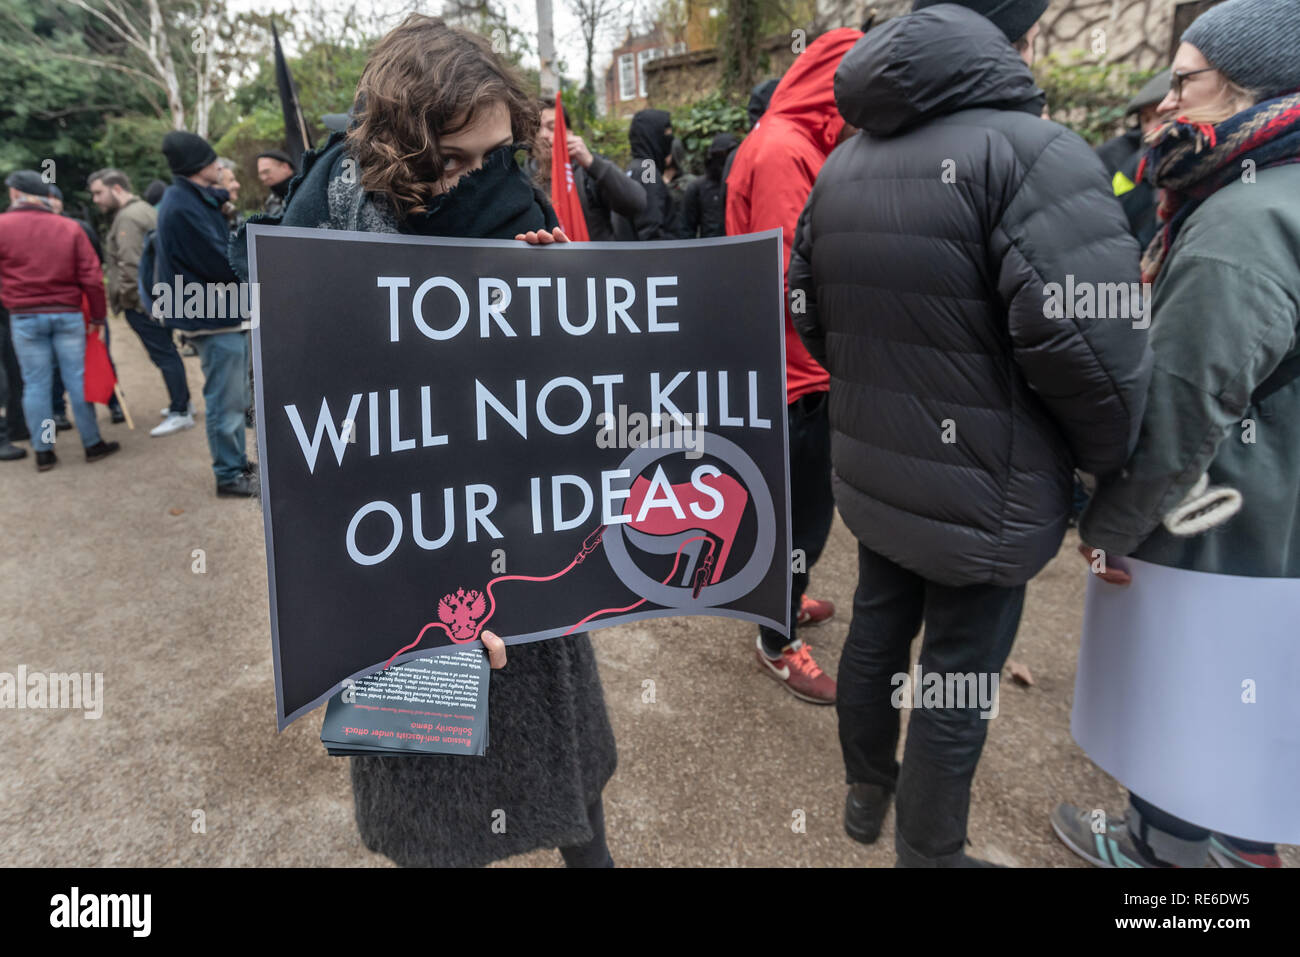 London, UK. 19th January 2019. An anti-fascist holds a poster 'Torture WIll Not Kill Our Ideas' at the Cable St rally to oppose Stanislav Markelovracism, xenophobia, fascism and the upsurge of far-right populism and to show solidarity with Russian anti-fascists who have been arrested, framed and tortured in a brutal wave of repression.  jail for five to twenty years. The rally took place on the anniversary of the brutal murder on the street by fascists of two Russian anti-fascist Credit: Peter Marshall/Alamy Live News - Stock Image